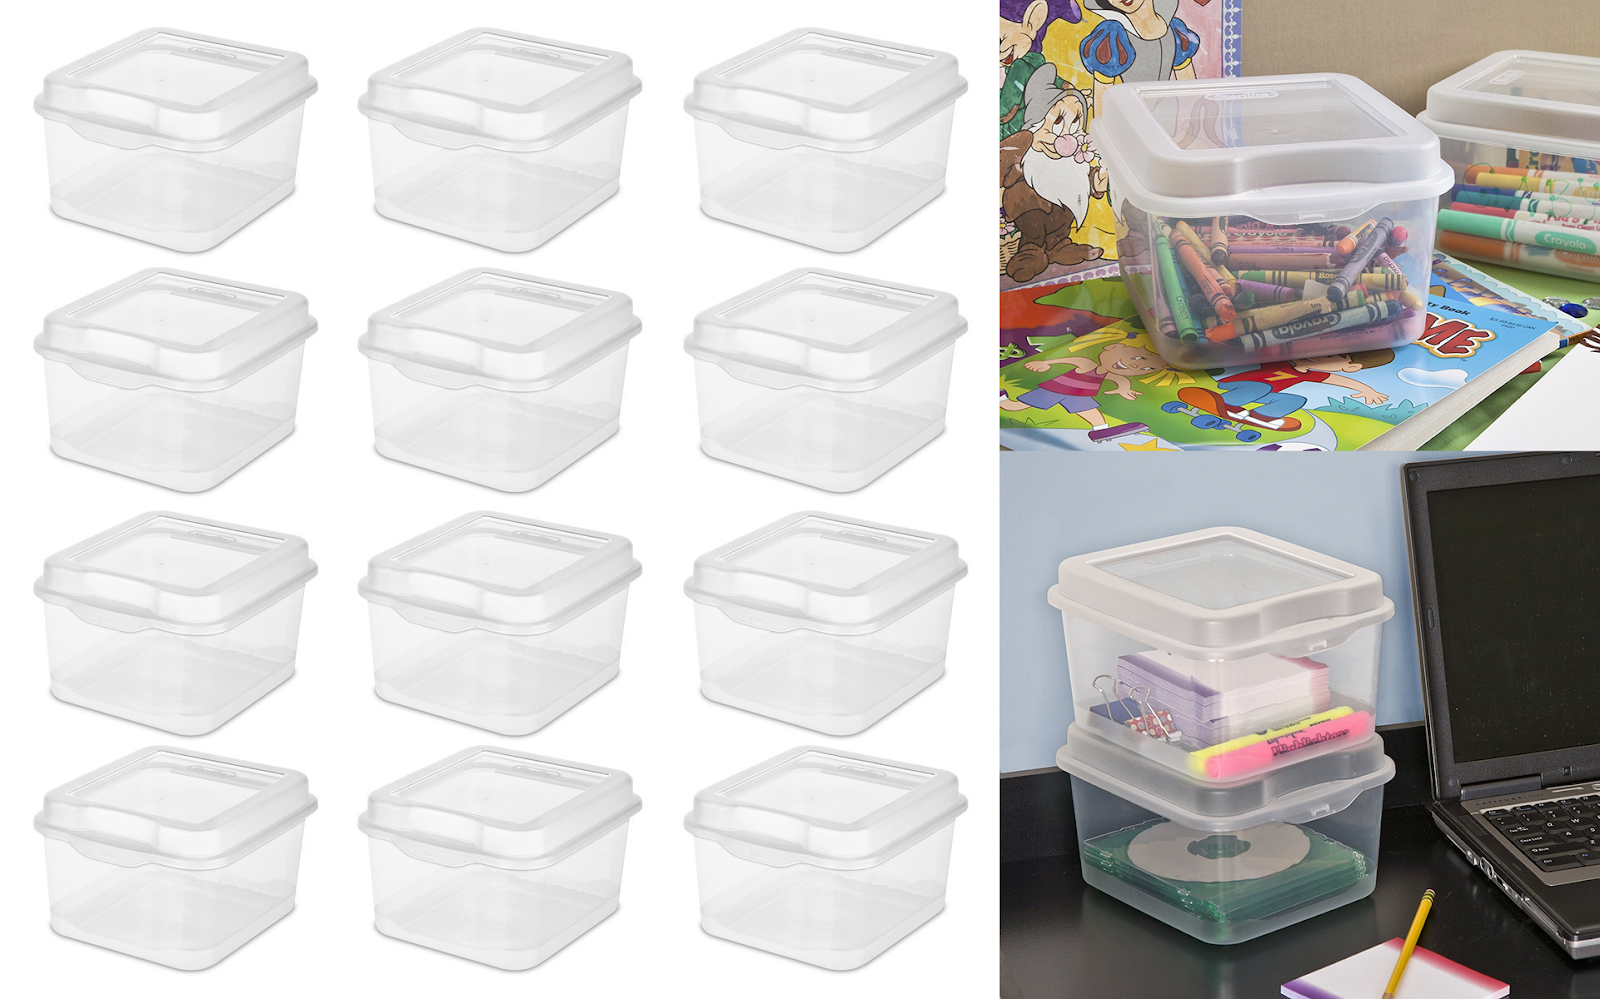 Head Over To Amazon And Score This Sterilite Flip Top Storage Box, 12 Pack  For $11.52 (Reg. $22.01). That Makes Each Container Only $0.96.